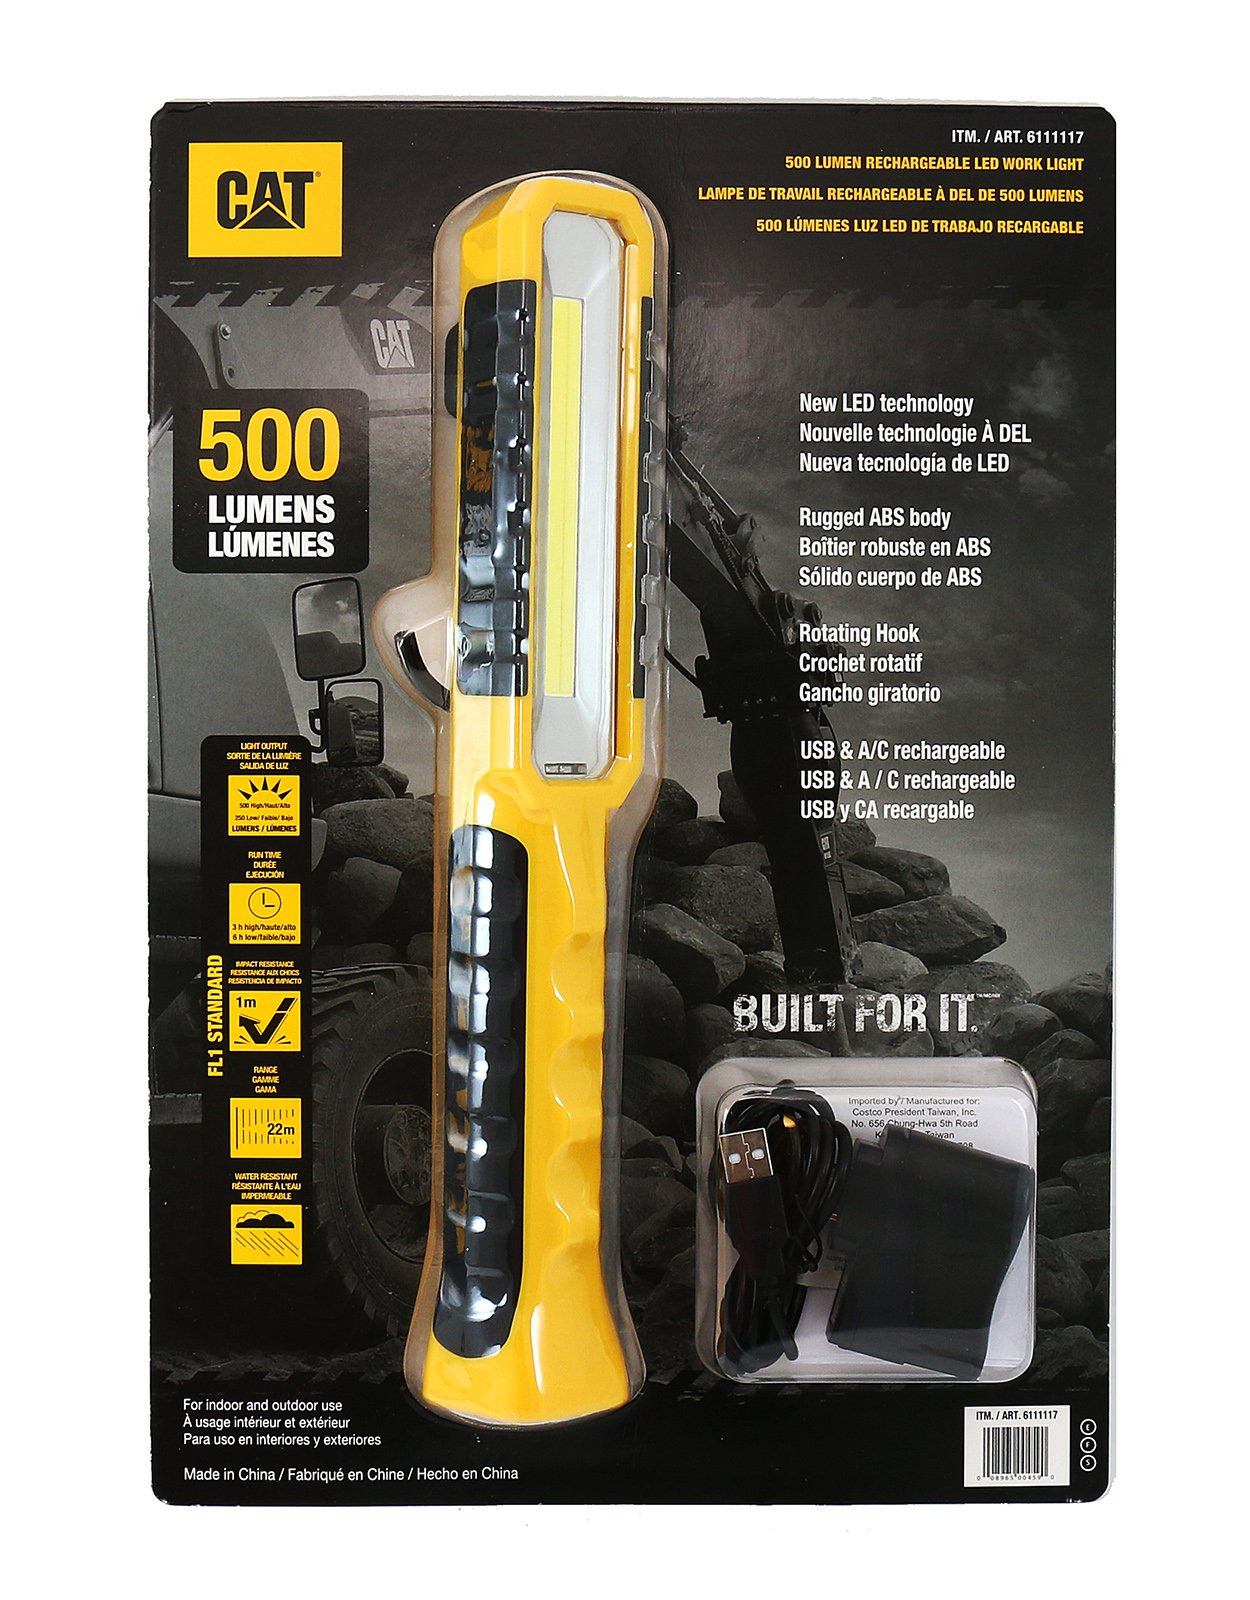 Caterpillar CAT 500 Lumens Rechargeable LED Work Light Flashlight with USB charger Water and Impact Resistant